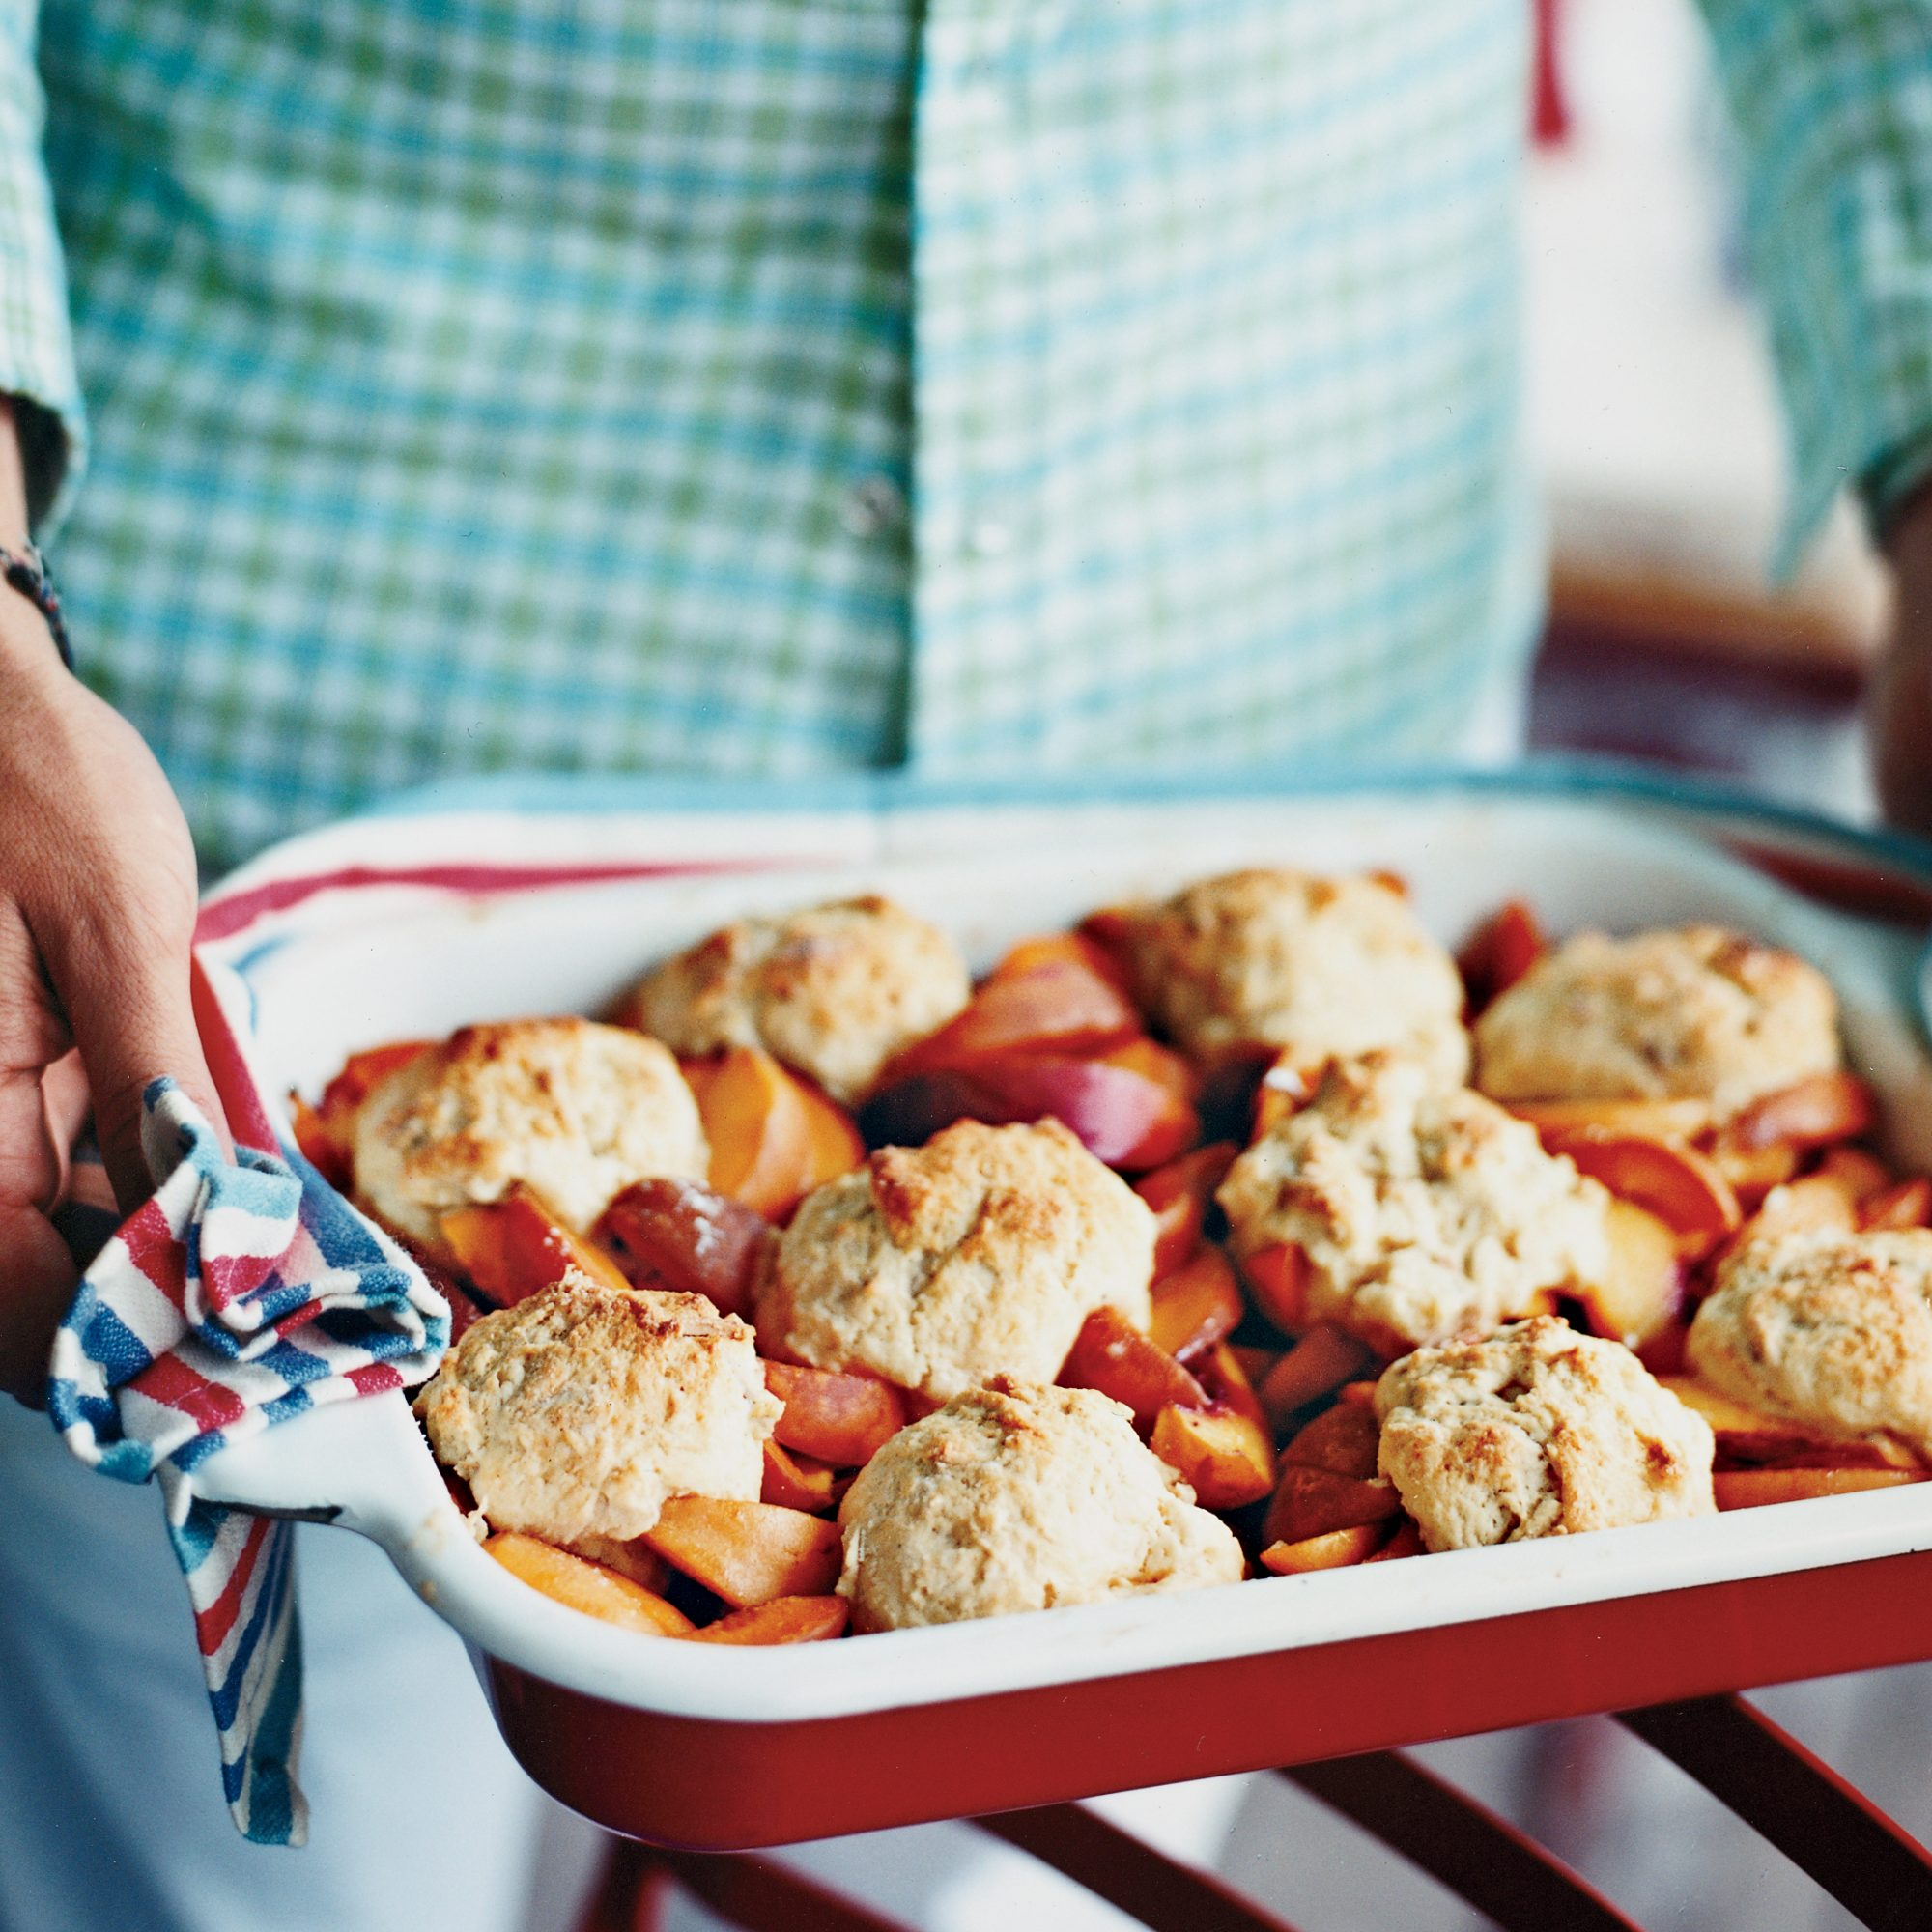 To boost the almond flavor in this recipe, Laurent Tourondel folds a handful of toasted slivered almonds into the fluffy, sweet cobbler topping.